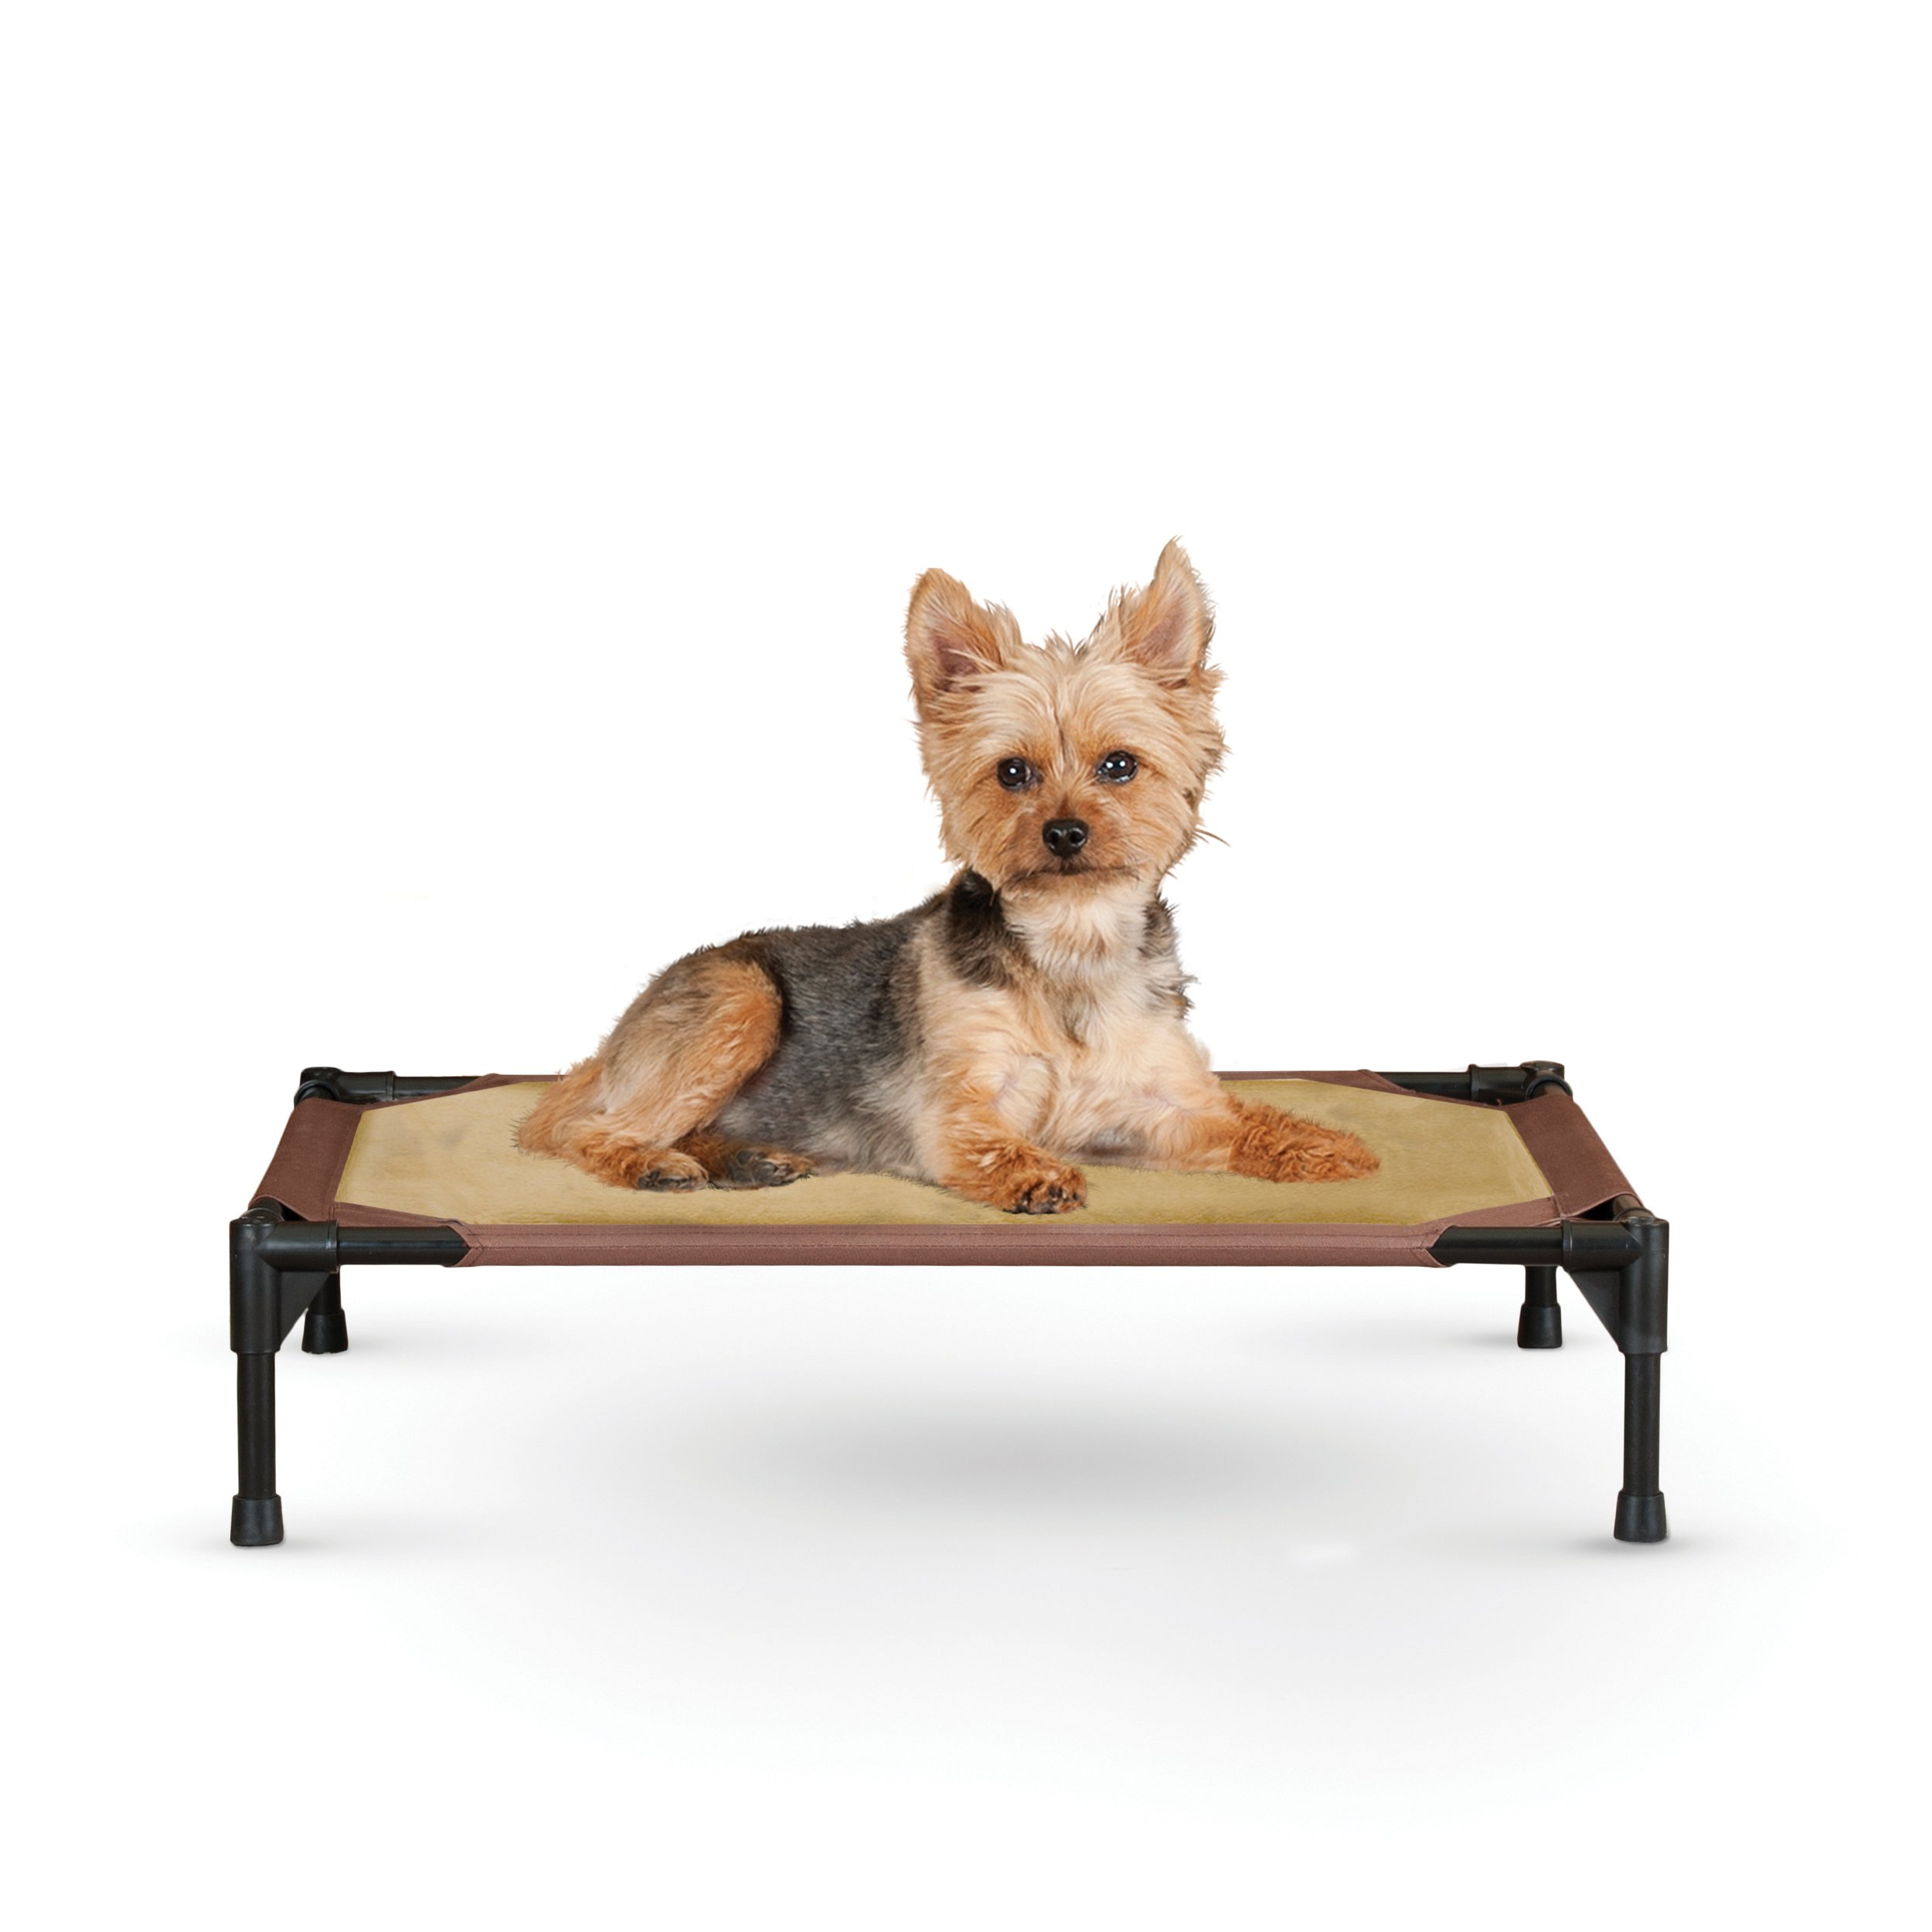 K&H Pet Products Comfy Pet Cot Elevated Pet Bed Small Chocolate/Tan 17'' x 22'' x 7''